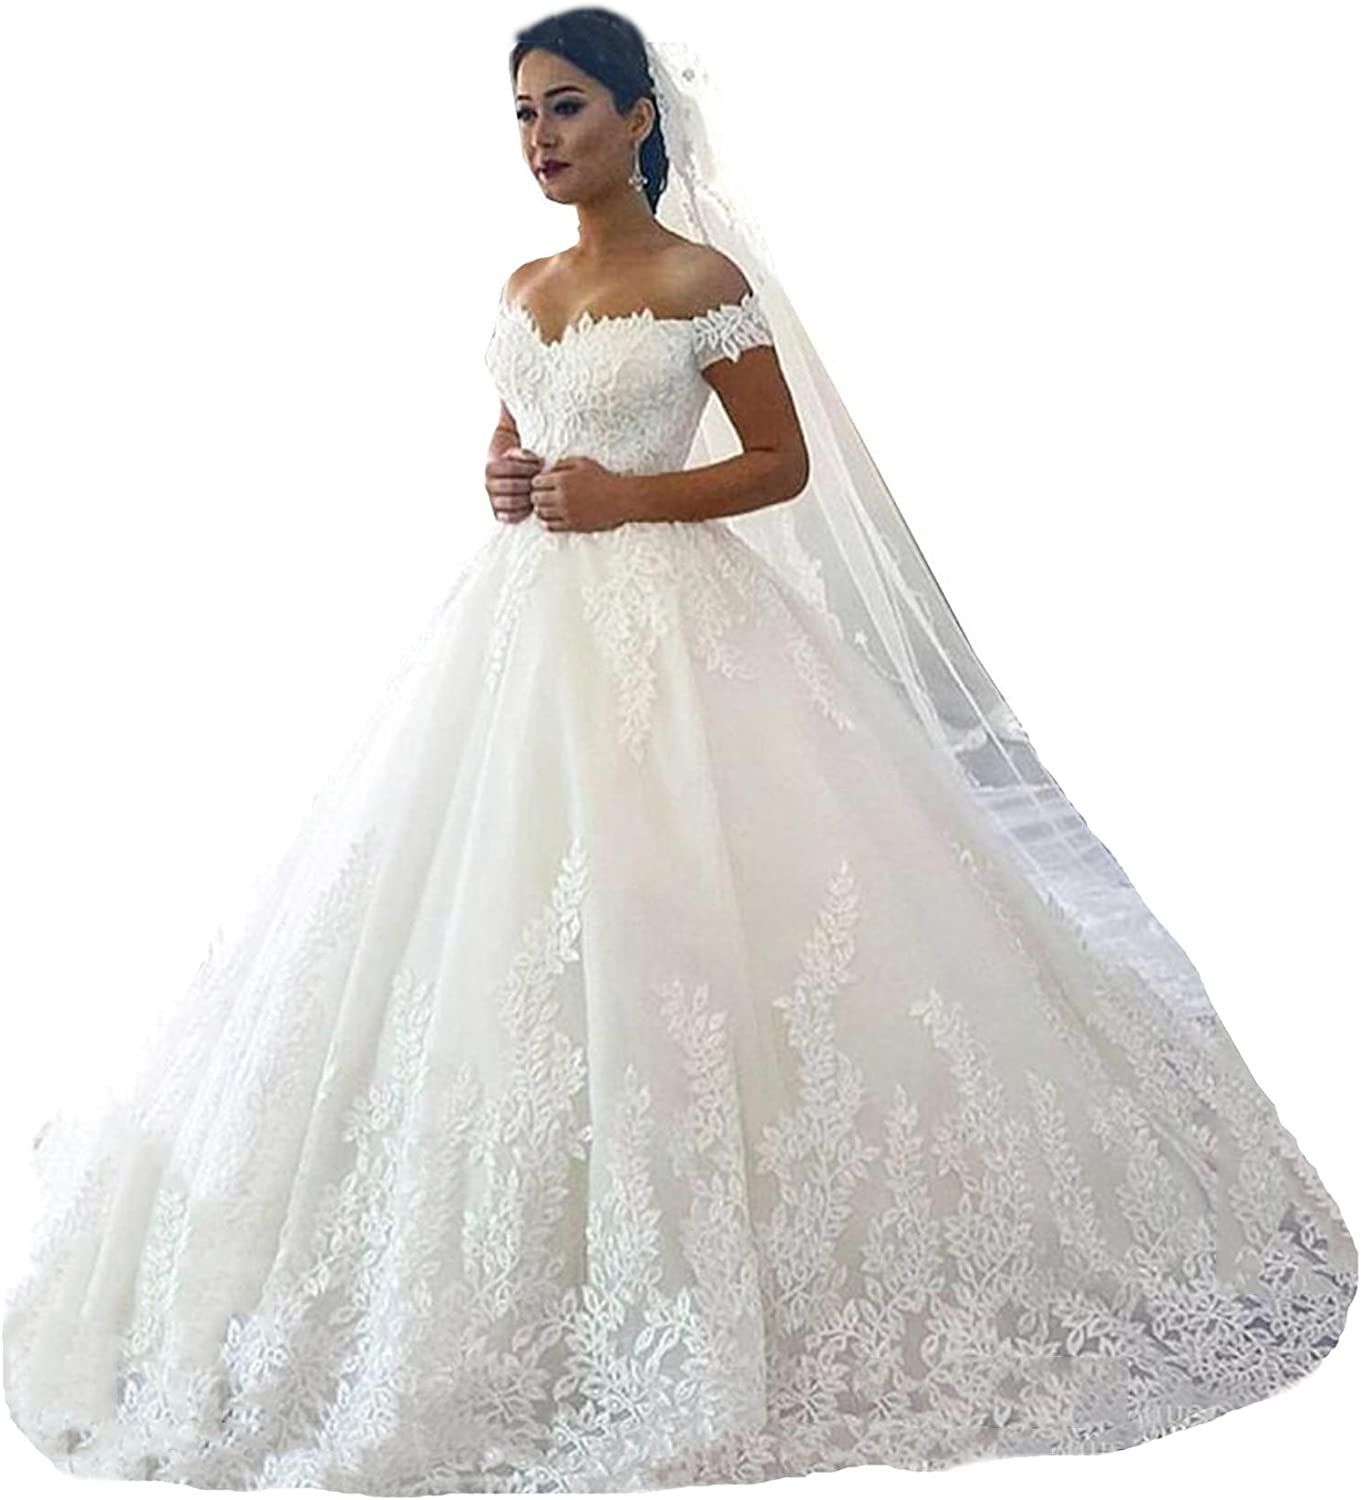 Amazon Com Fanciest Women S Lace Wedding Dresses For Bride 2021 Ball Gowns White Clothing